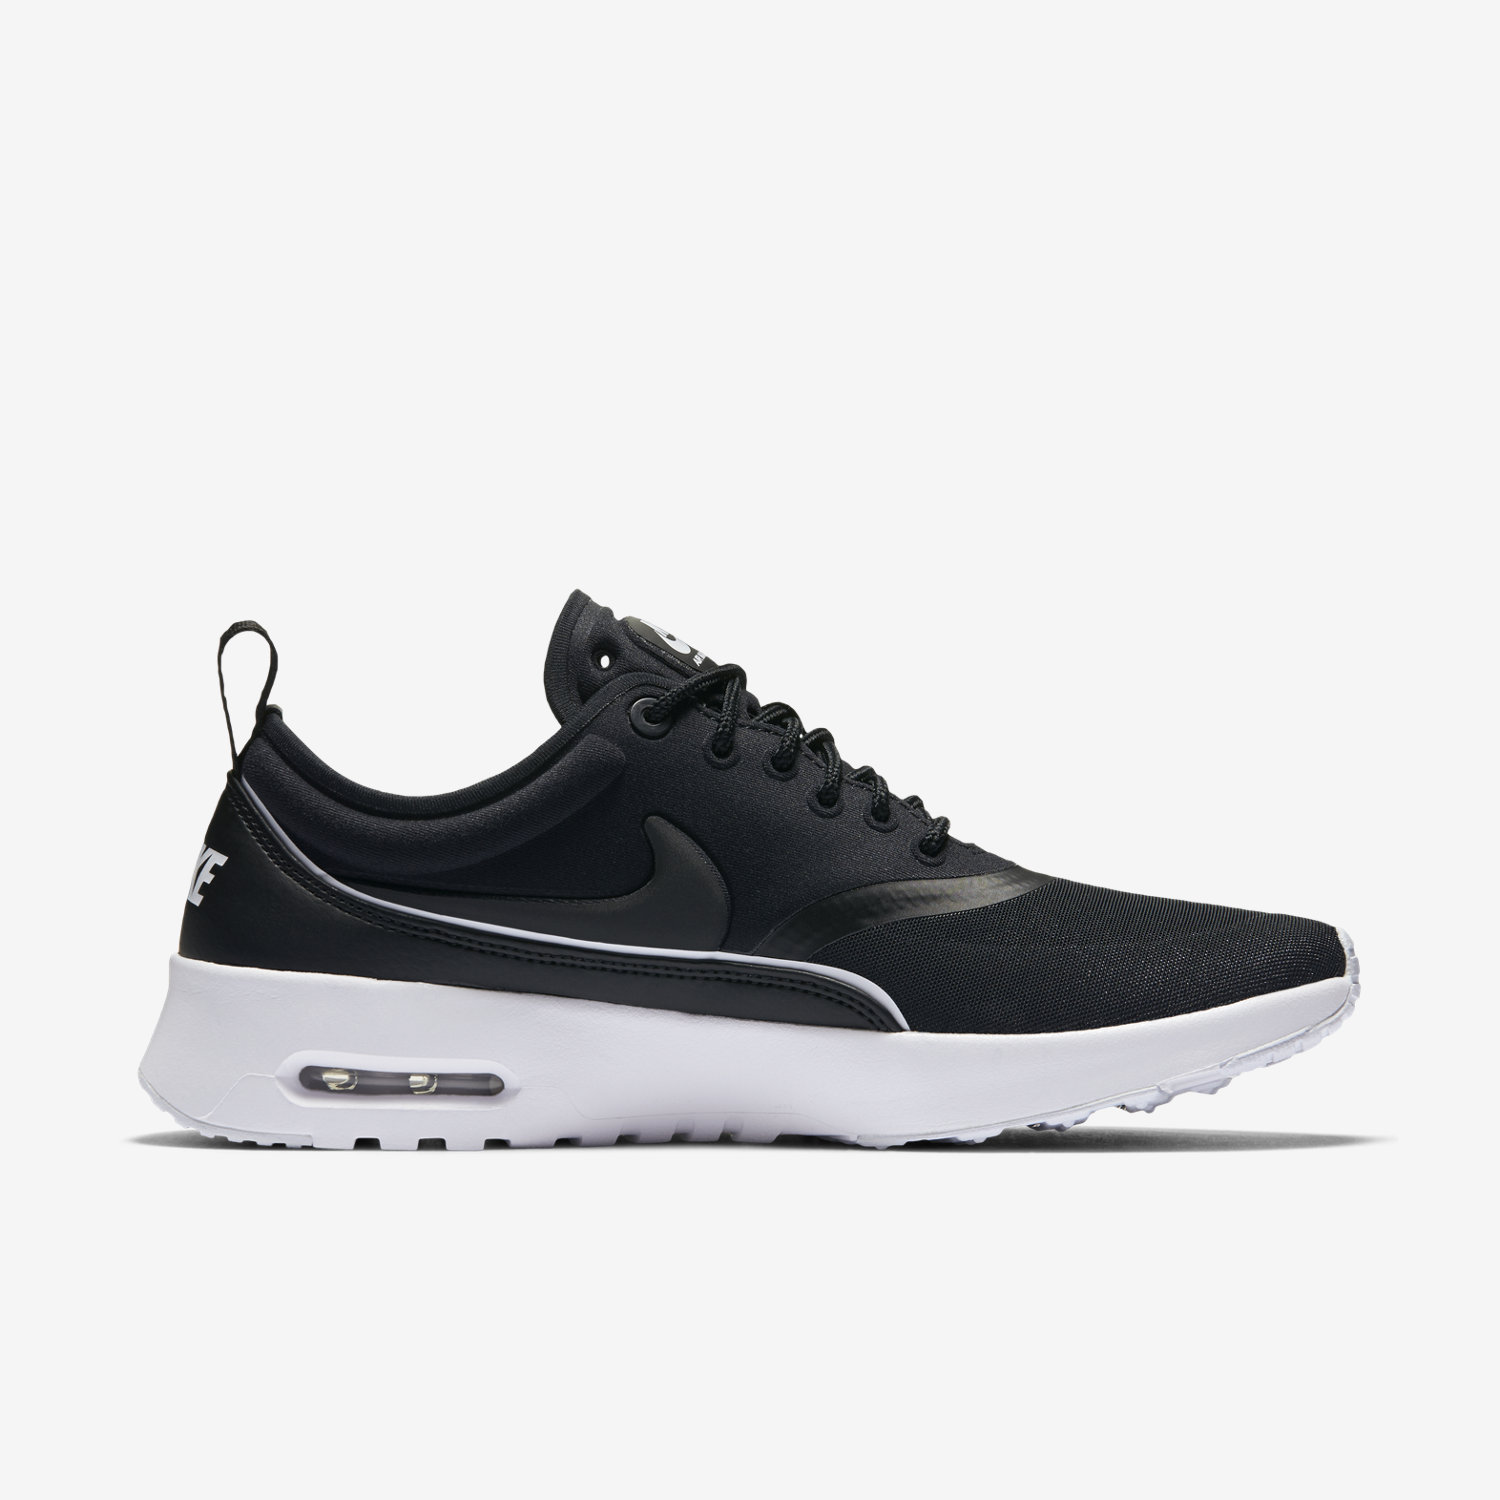 Nike Air Max Thea Premium Women's JD Sports